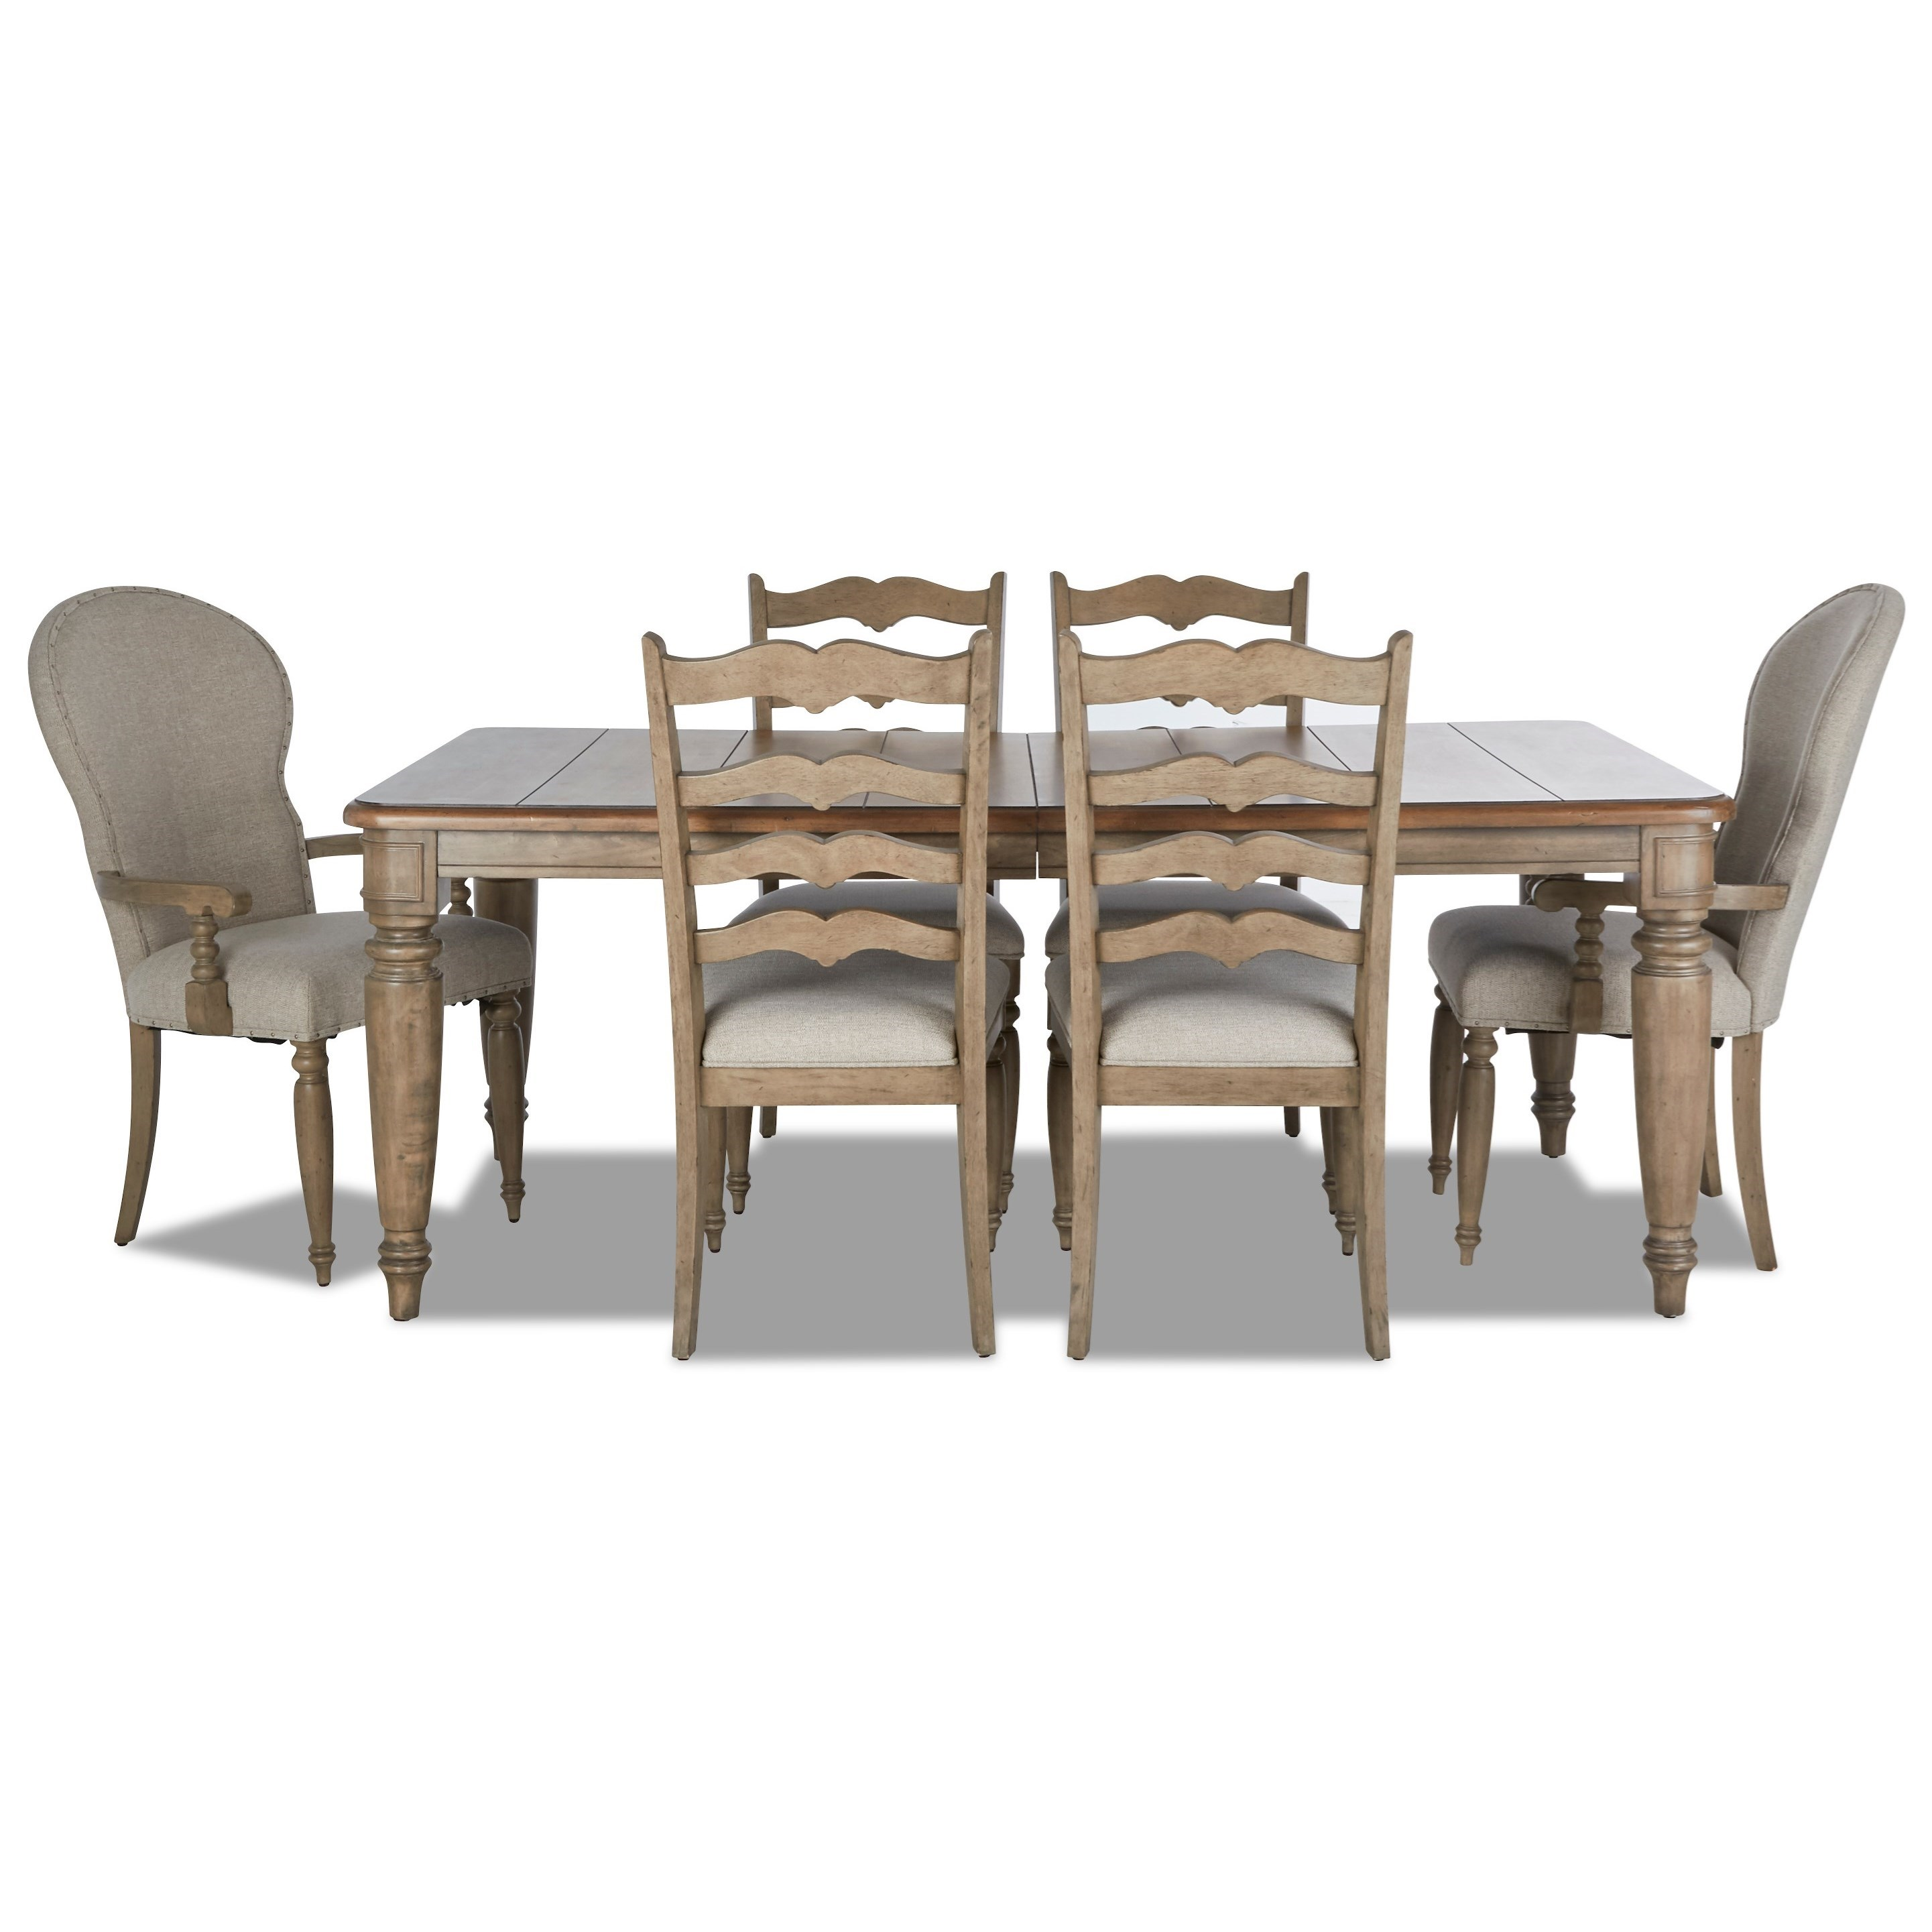 Nashville 7-Piece Dining Set by Trisha Yearwood Home Collection by Klaussner at Johnny Janosik